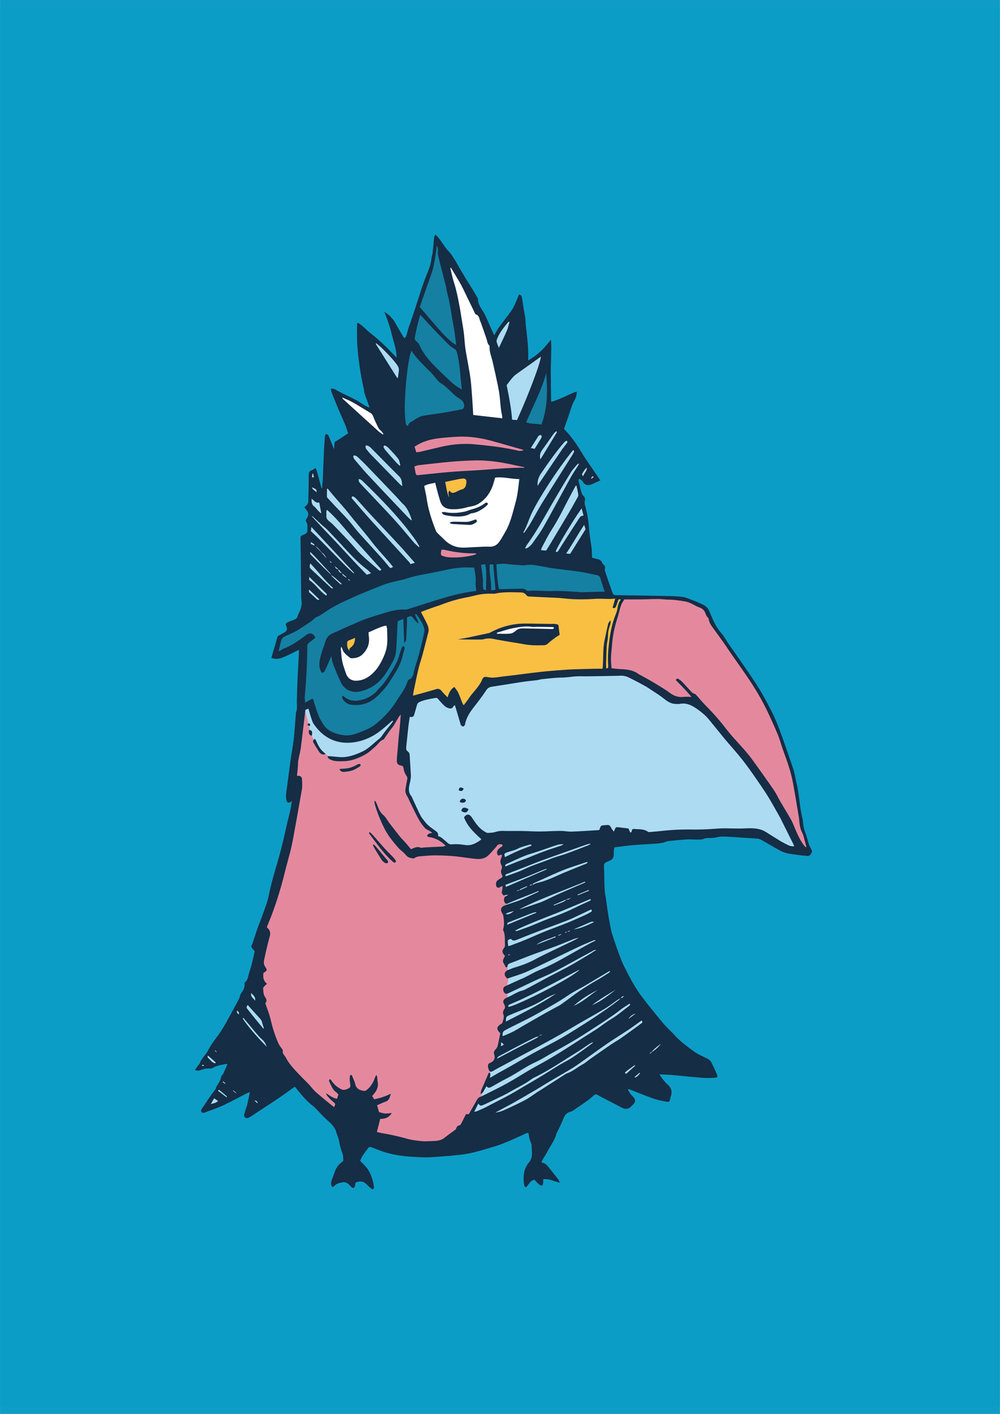 Bird_illustration_vector_phist.jpg